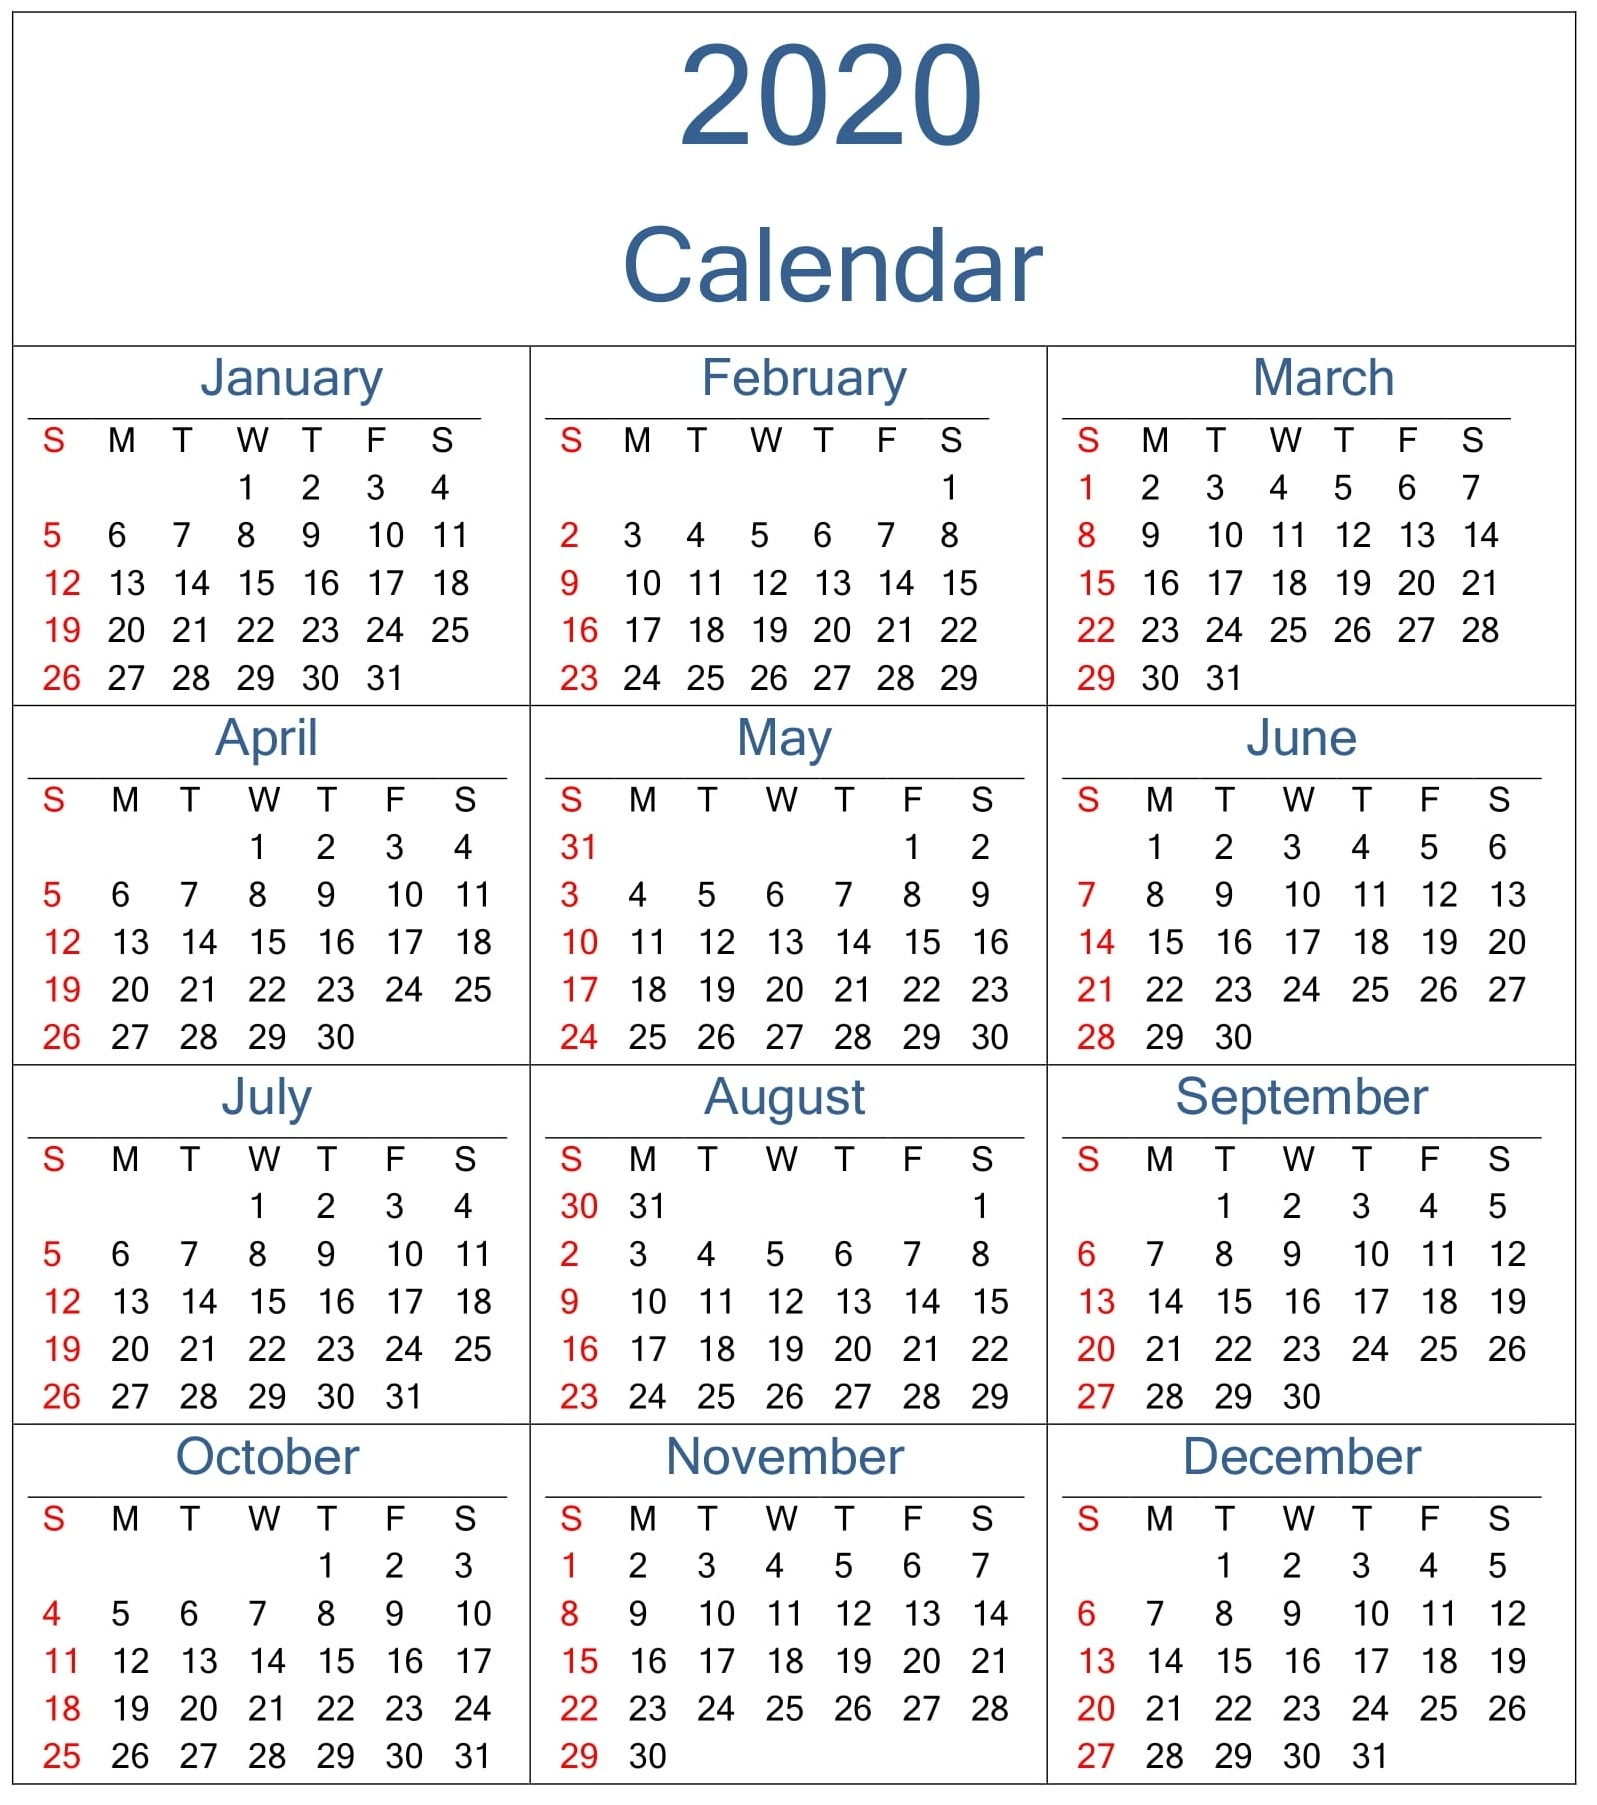 Yearly 2020 Calendar Excel Template - Latest Printable intended for 2020 Calendar With Week Numbers Printable